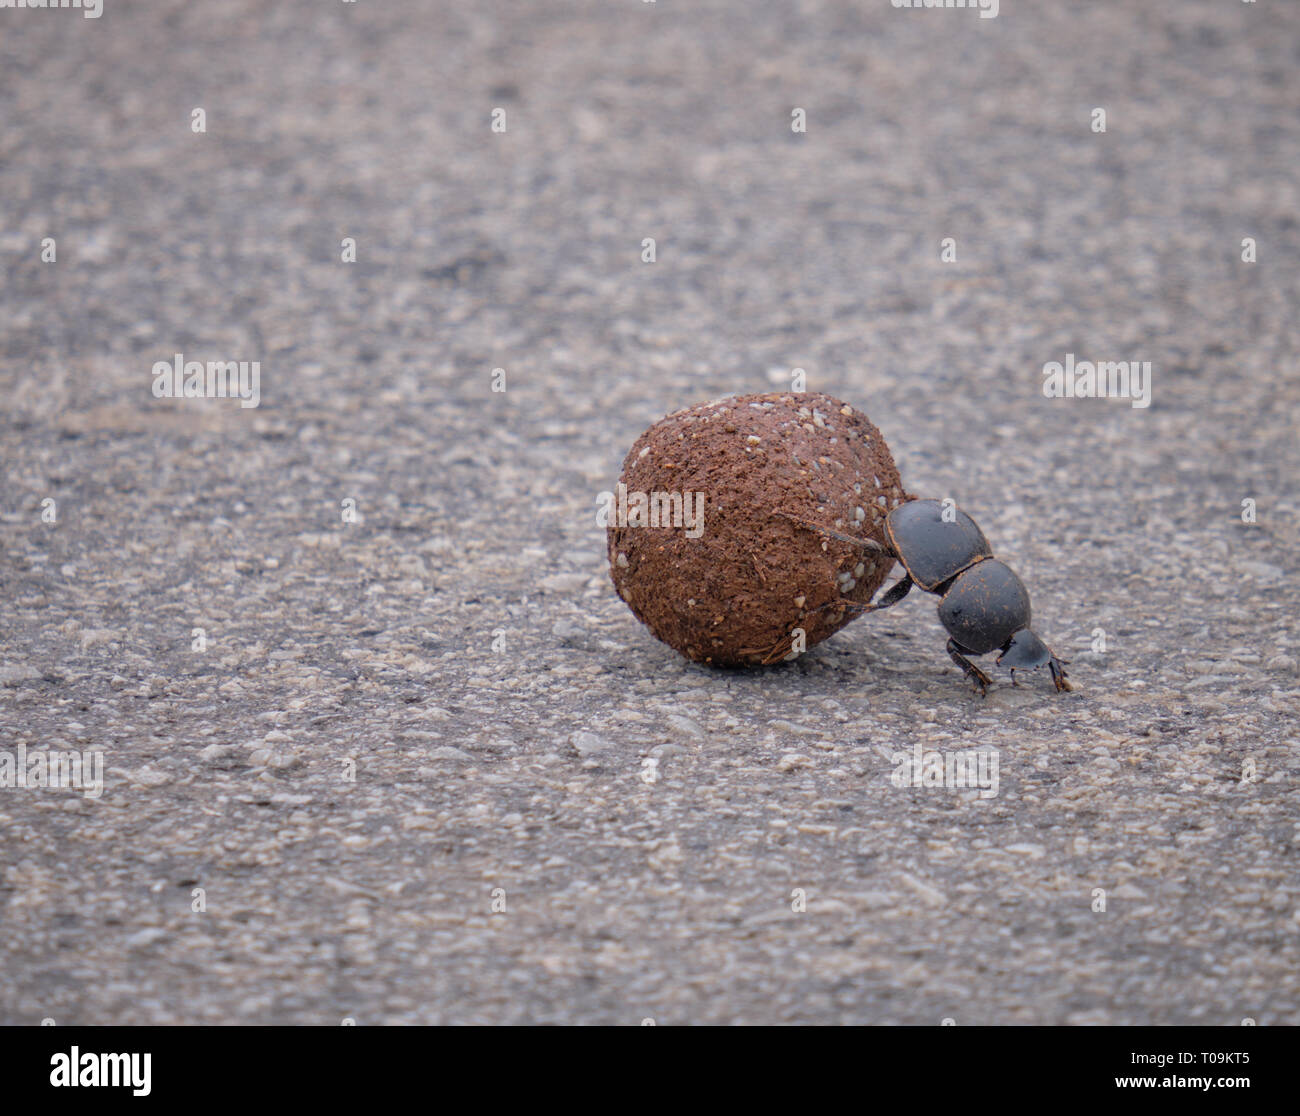 Flightless dung beetle pushing a ball of elephant excrements over the pavement Stock Photo